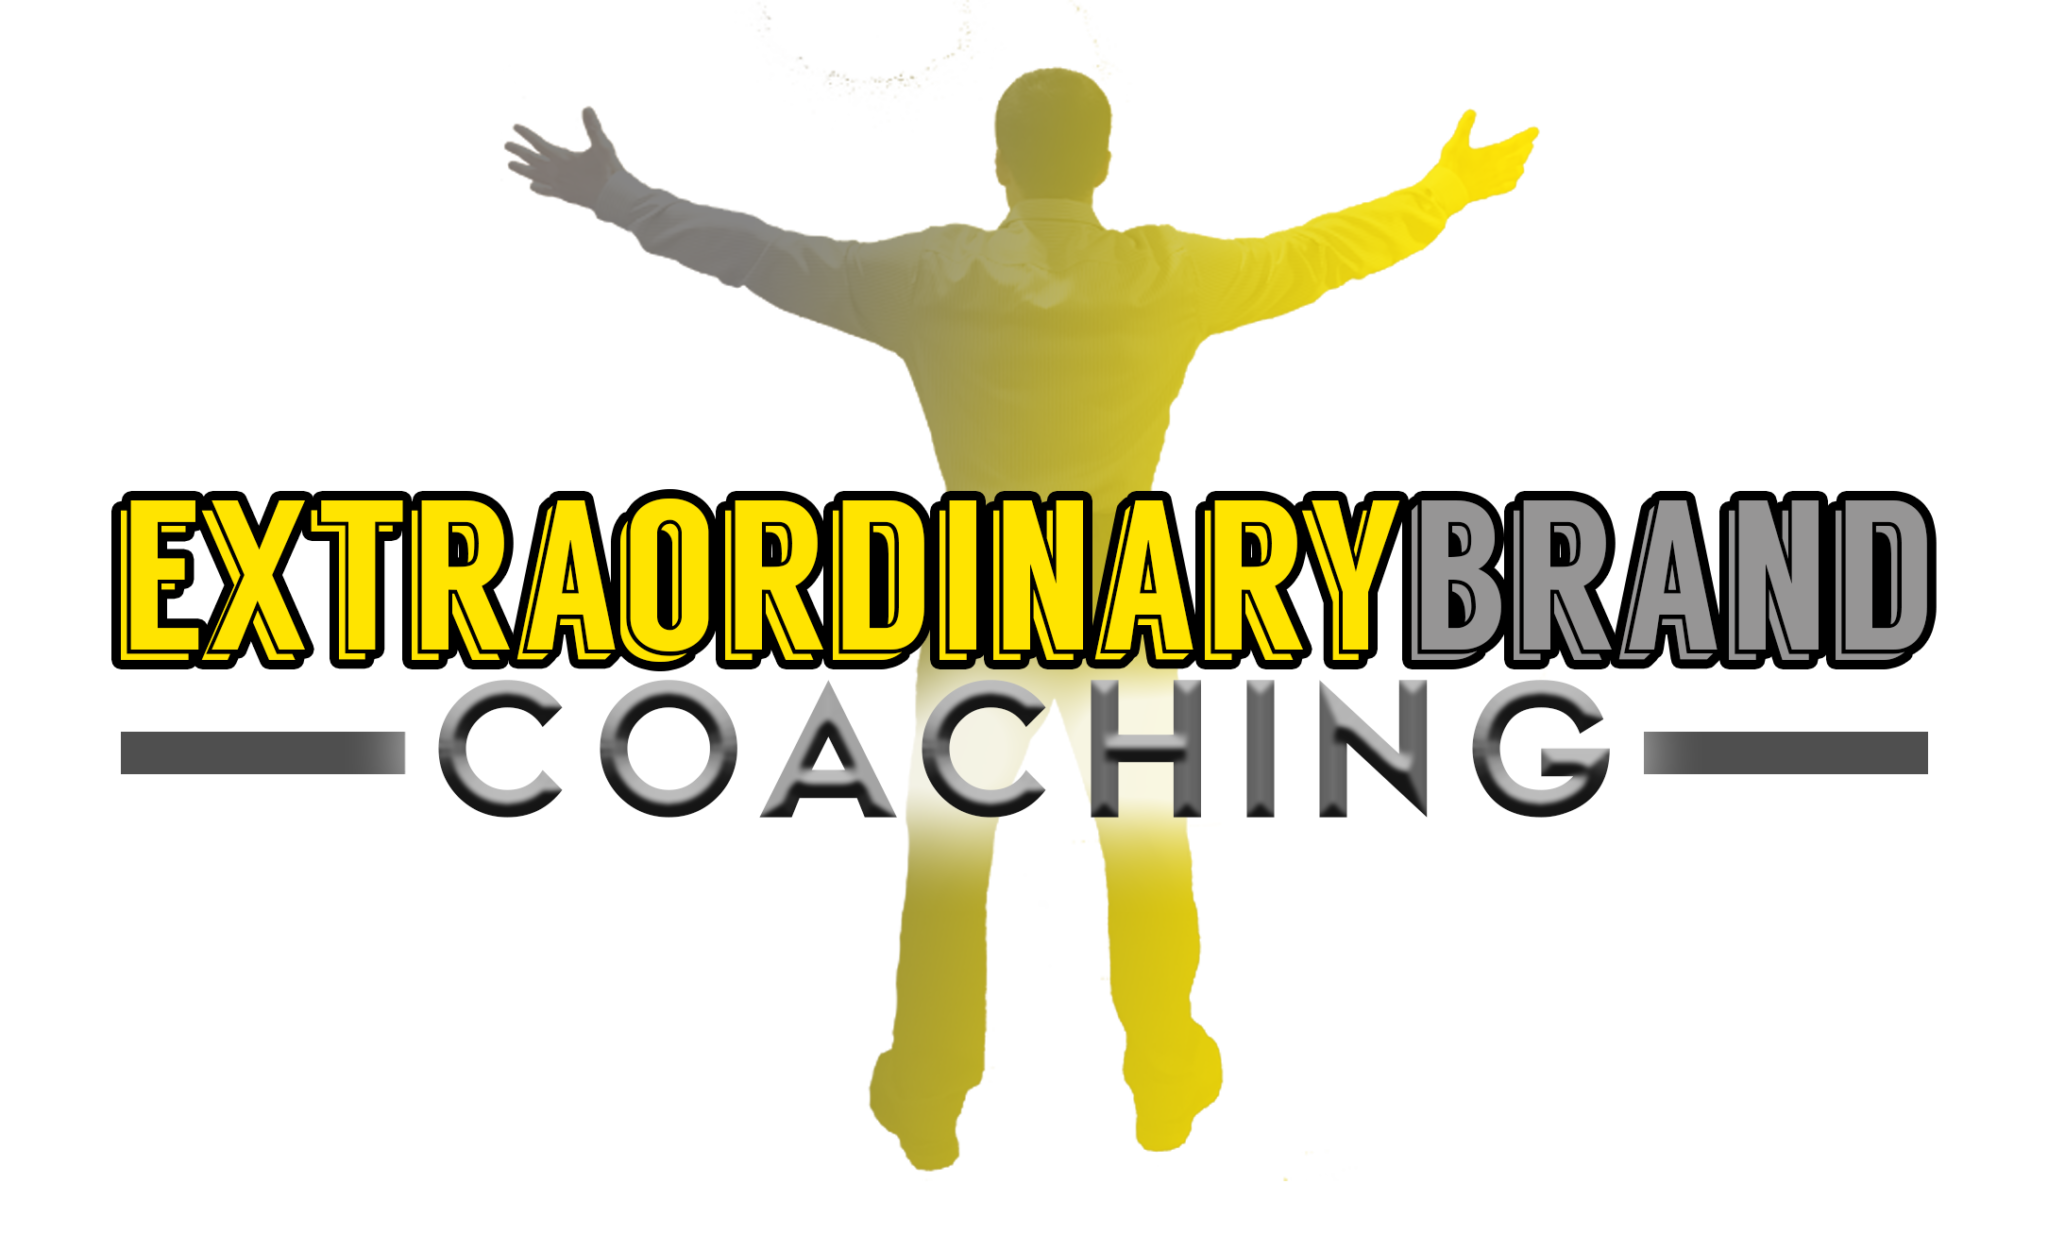 Extraordinary Brand Coaching